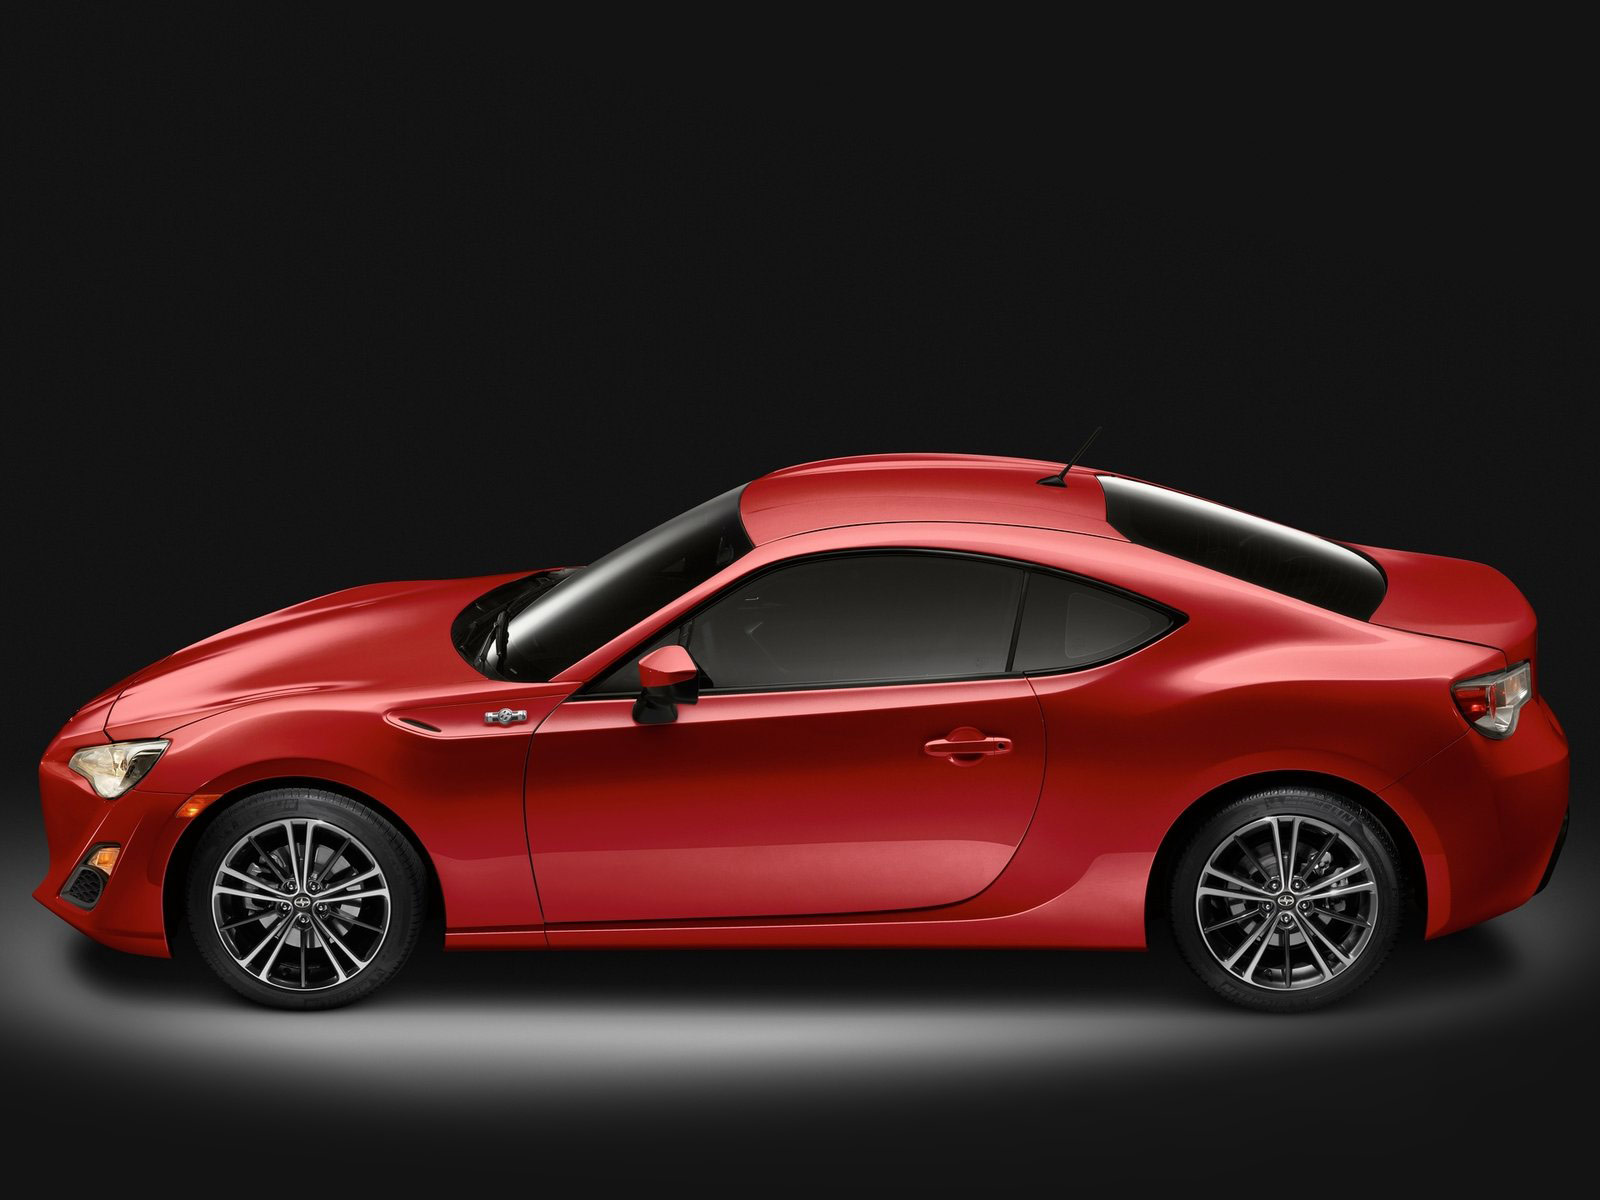 2013 Scion Fr S Car Desktop Wallpaper